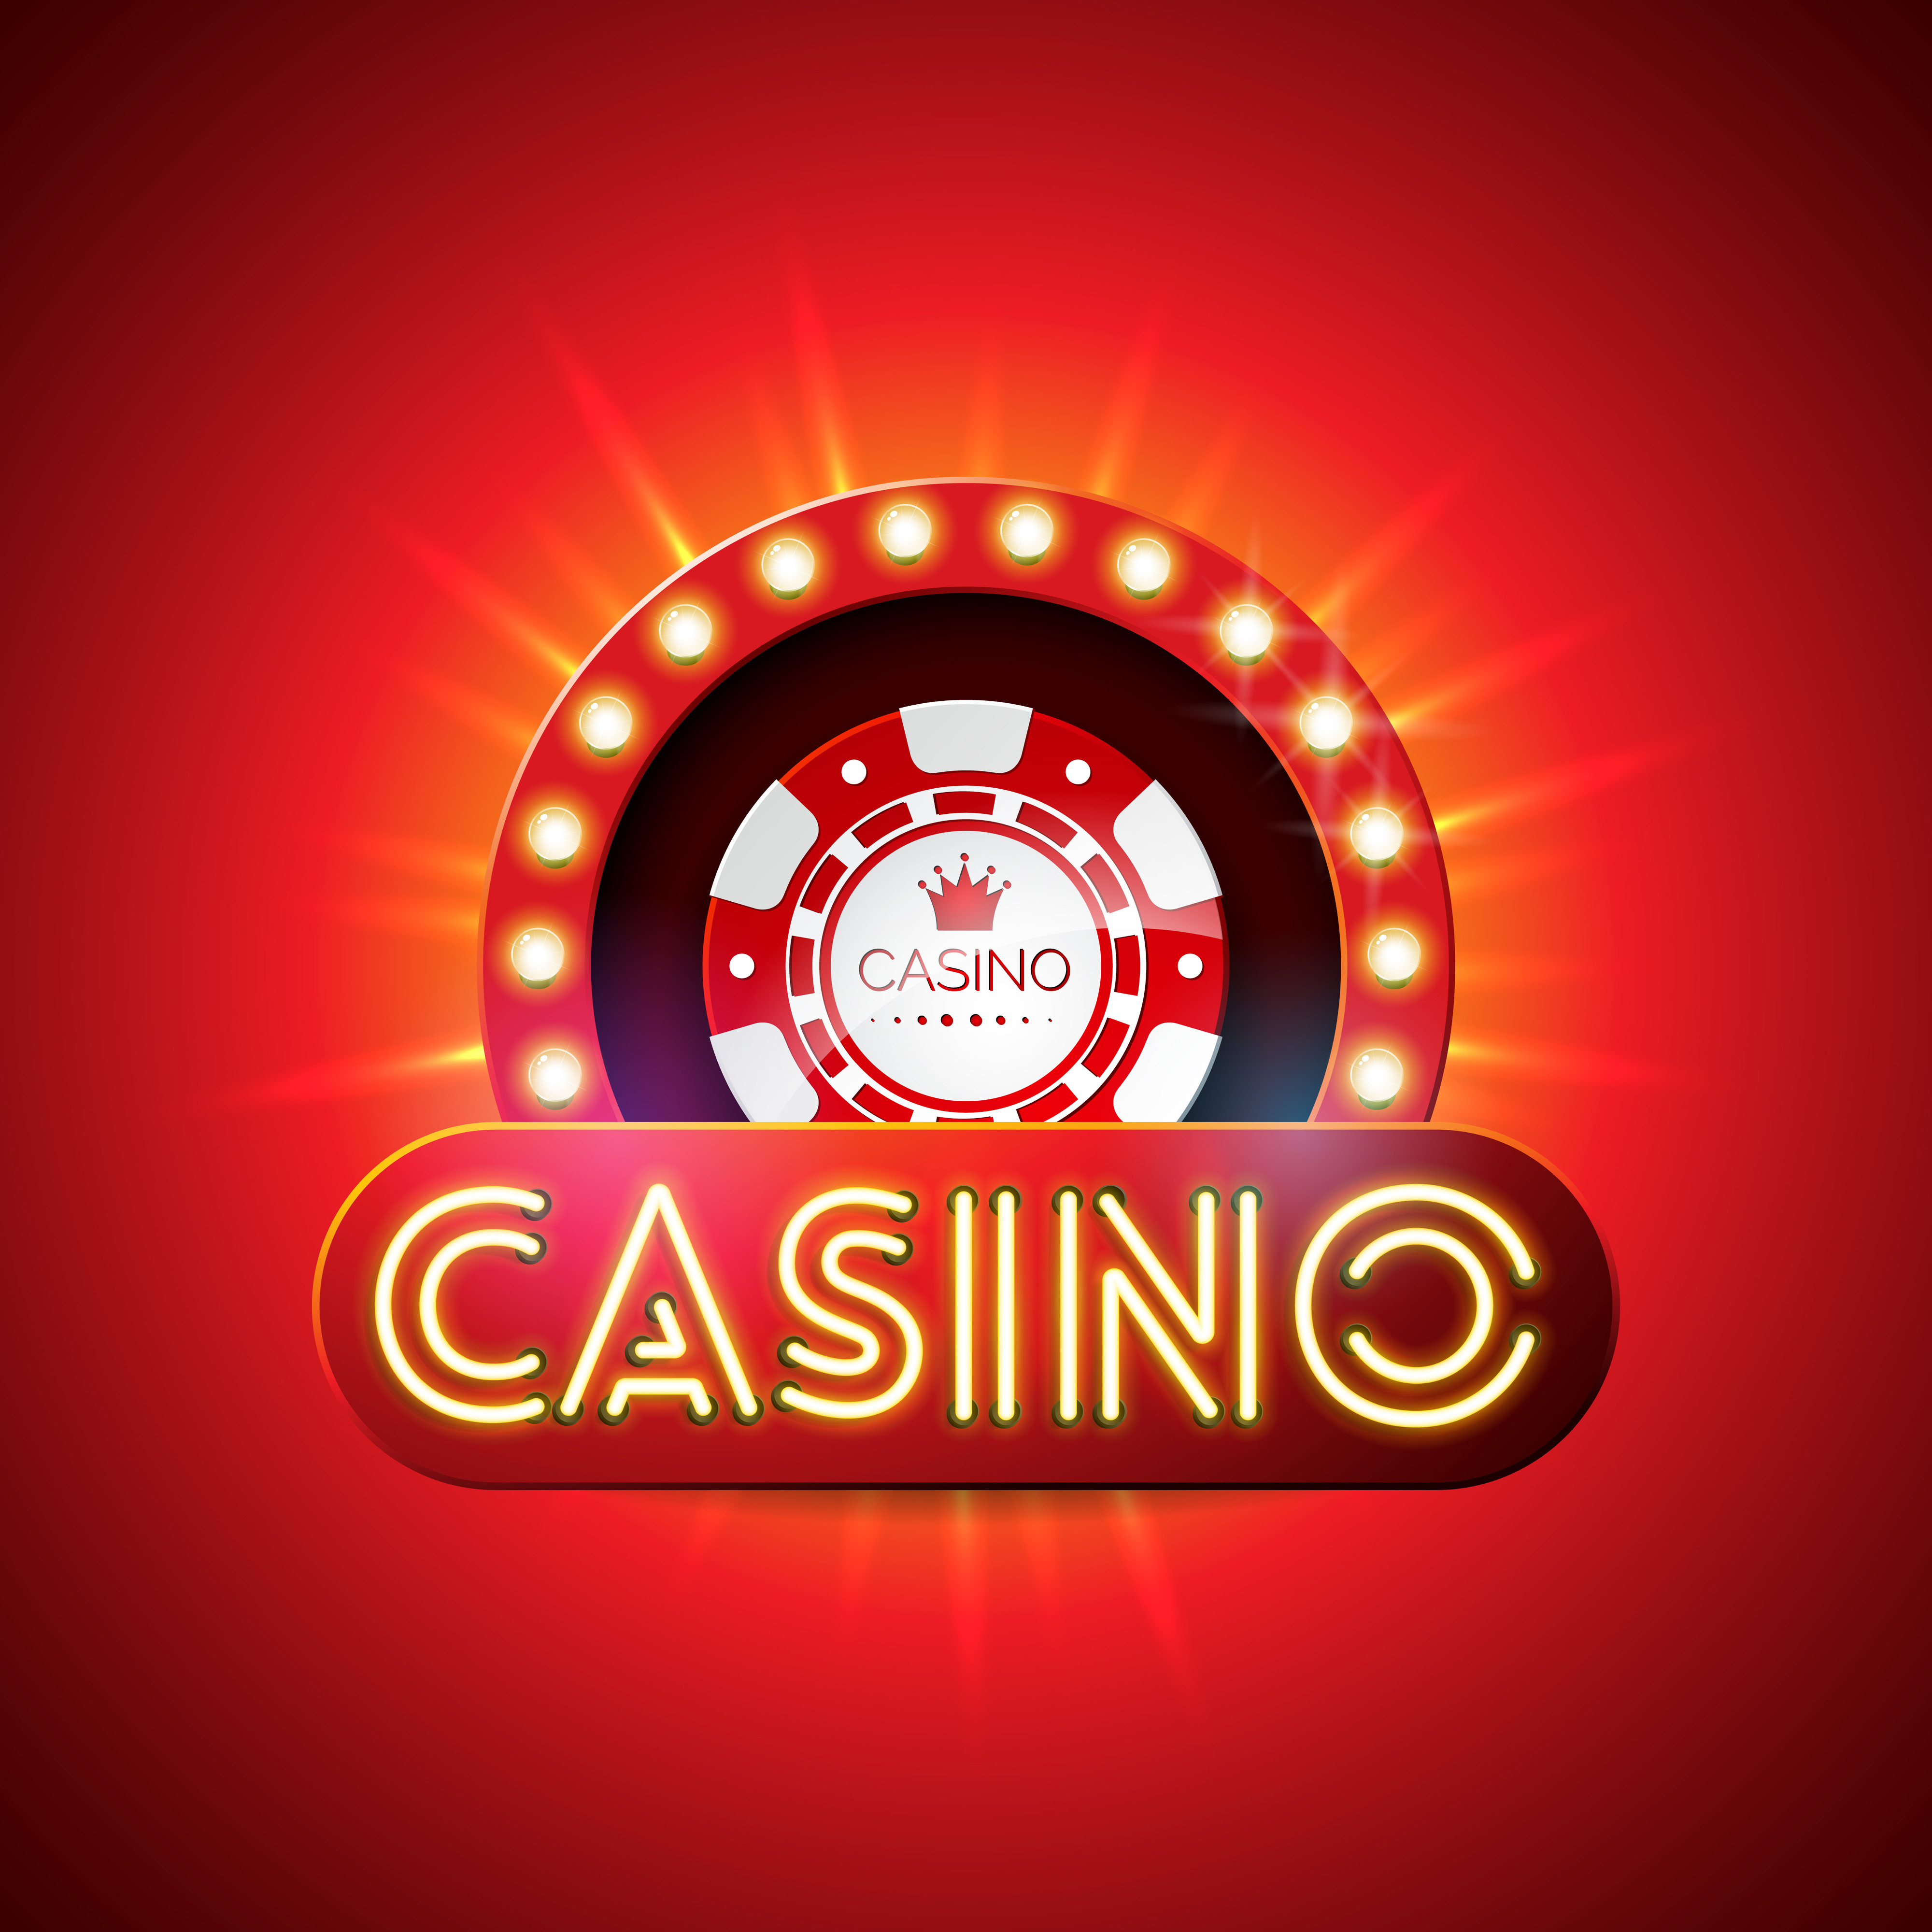 Casino illustration with neon light letter and playing